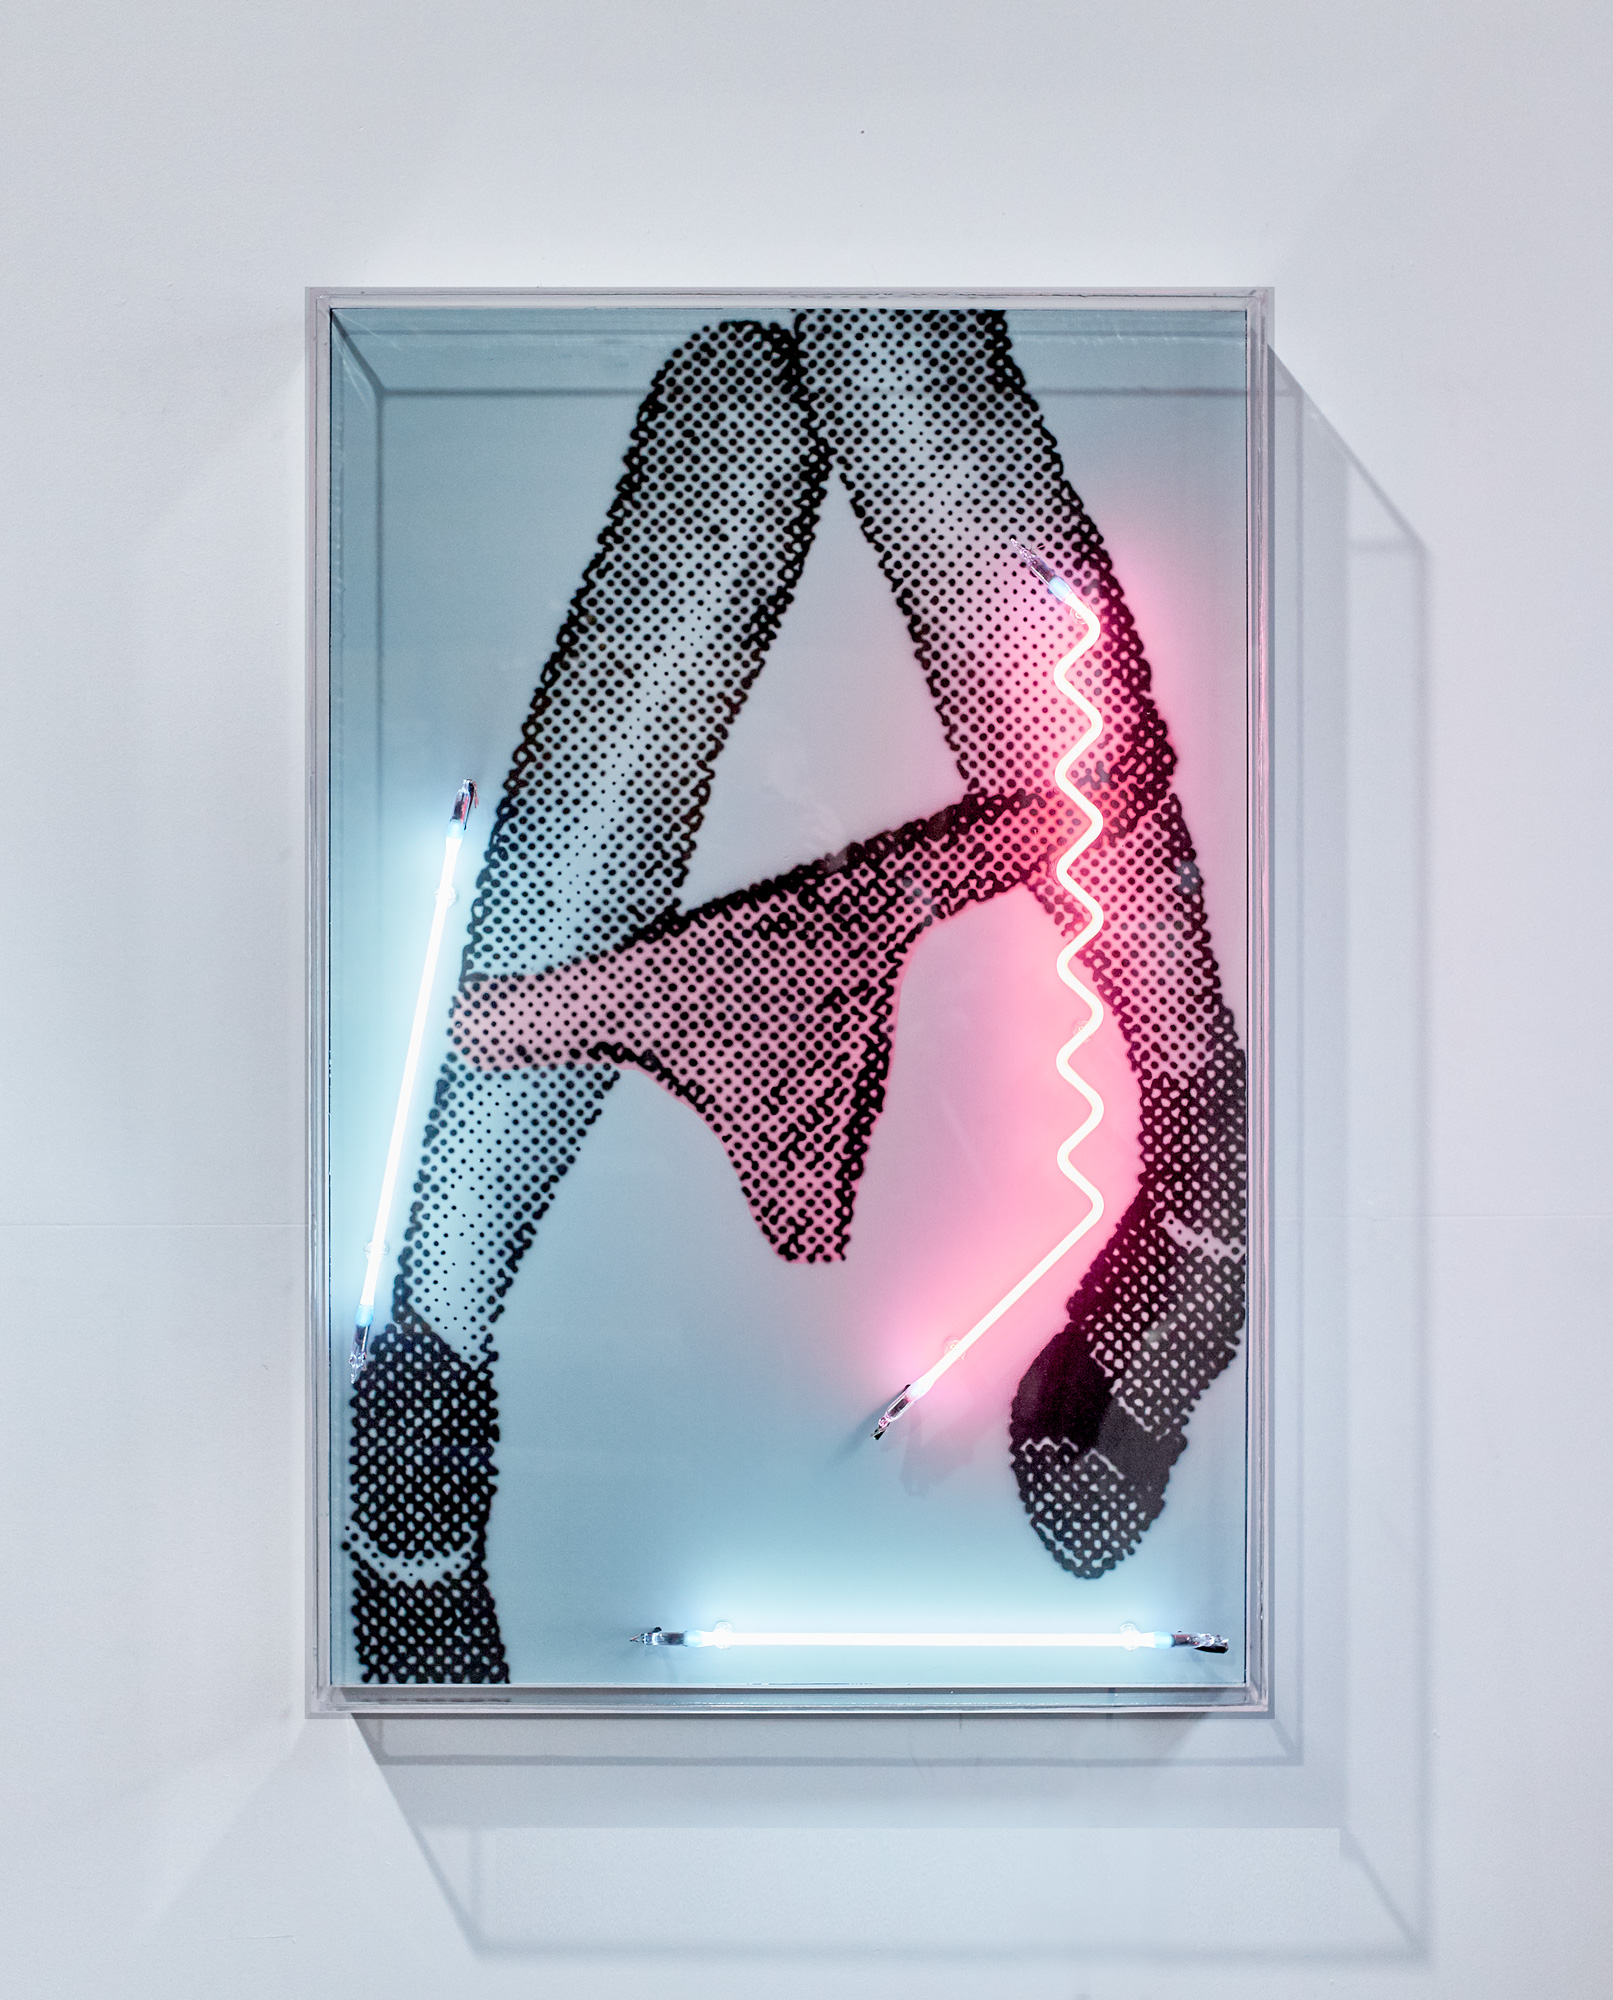 Drop 'em like it's hot (RIP), 2018  Airbrush acrylic polymer and neon on dibond, acrylic frame 80x120cm